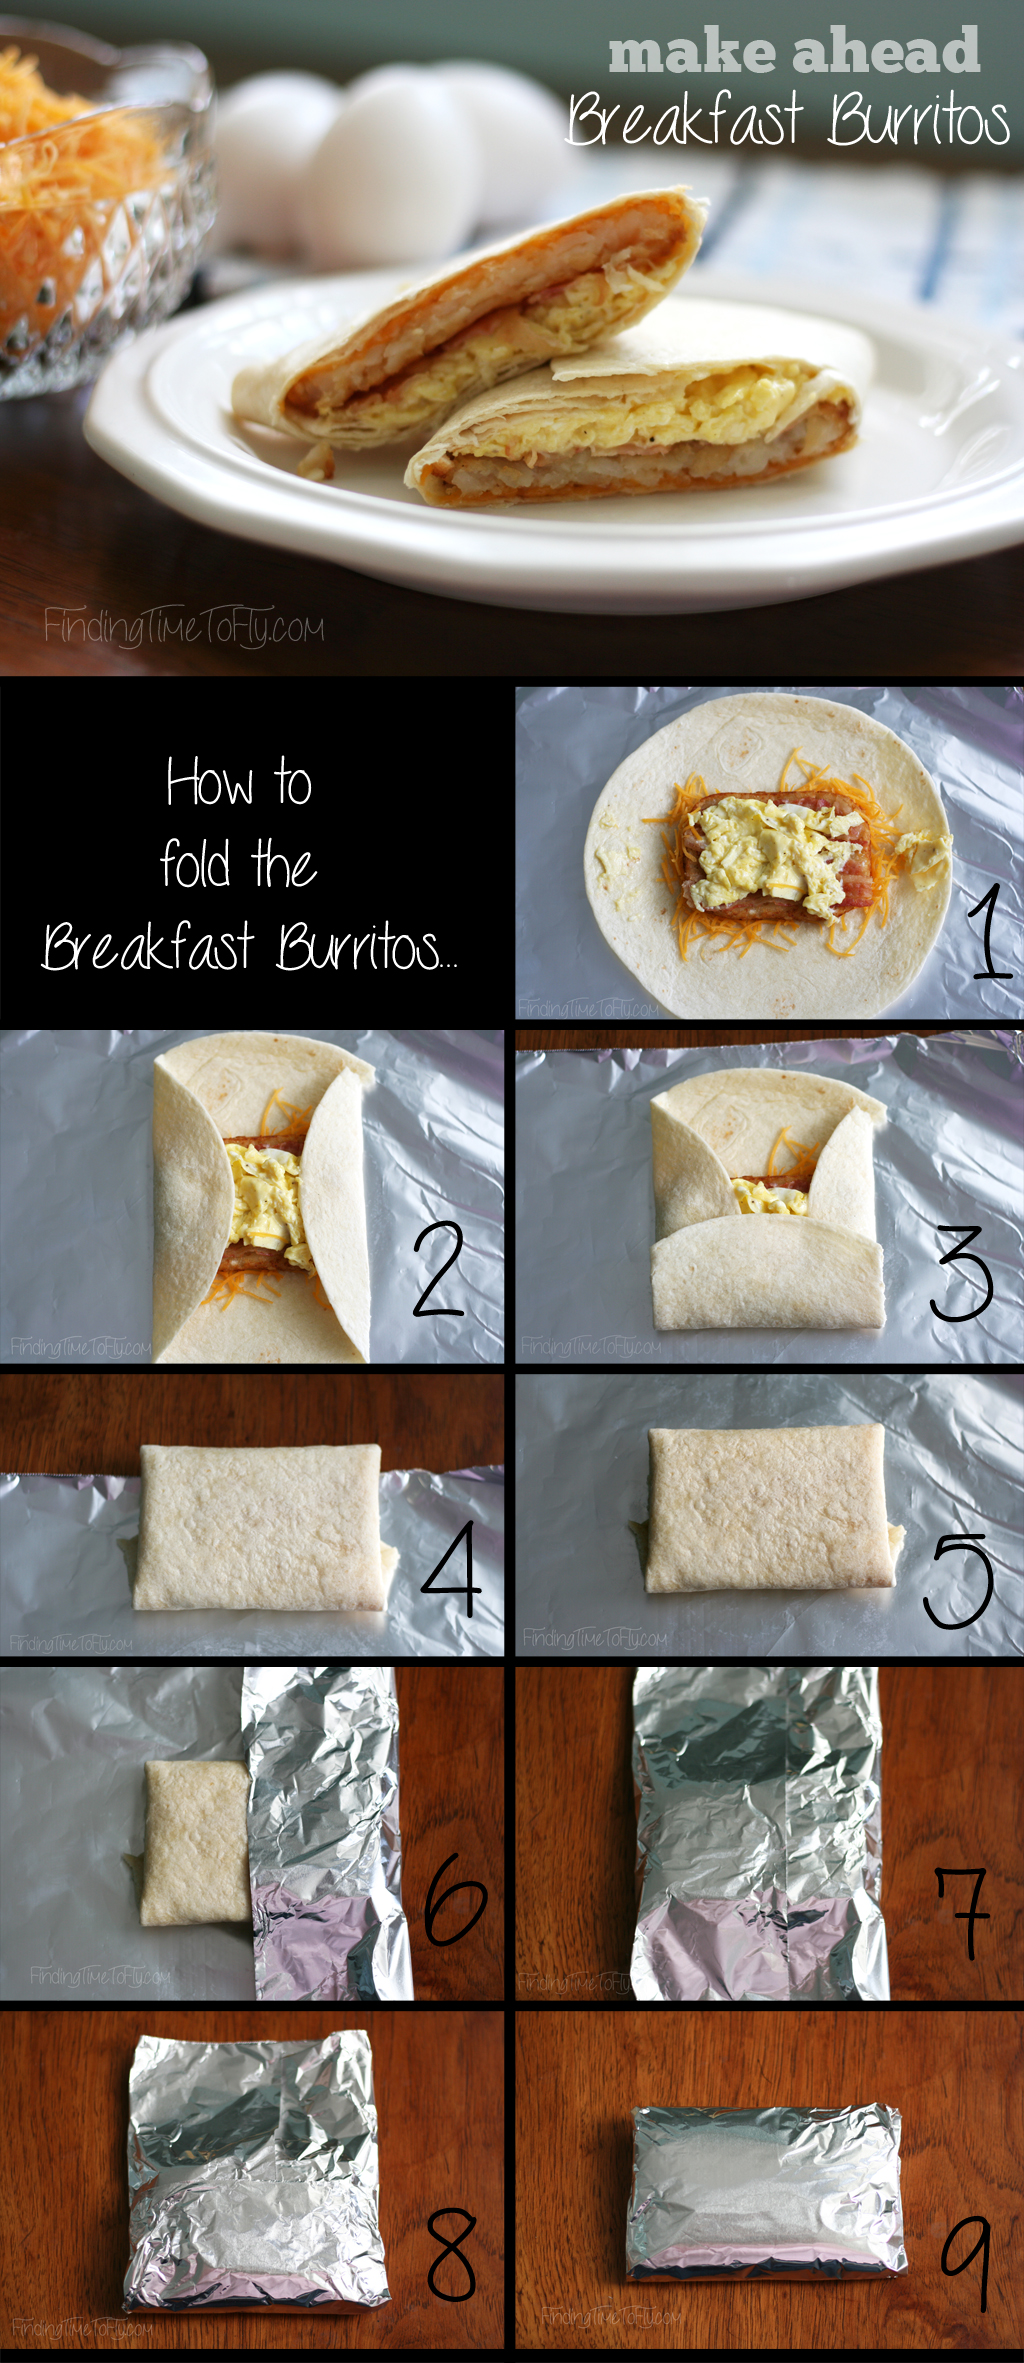 Make Ahead Breakfast Burritos. These would be great for camping, traveling, vacation, or just to keep in the freezer for busy mornings.